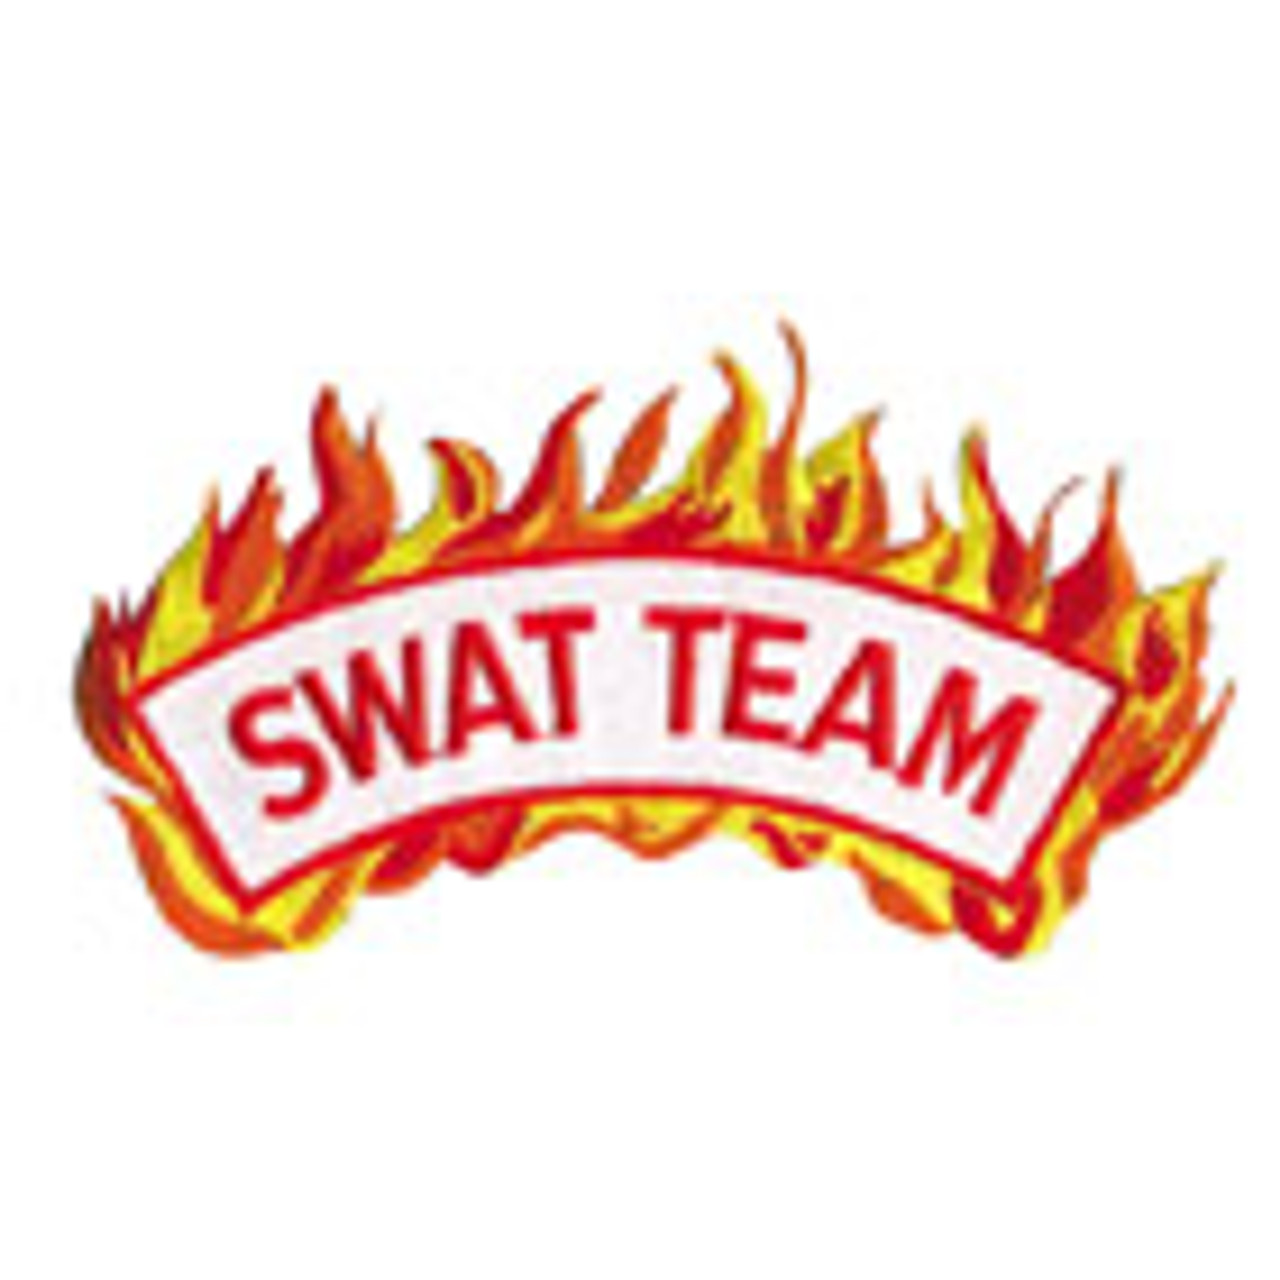 SWAT Team - Flame Patch